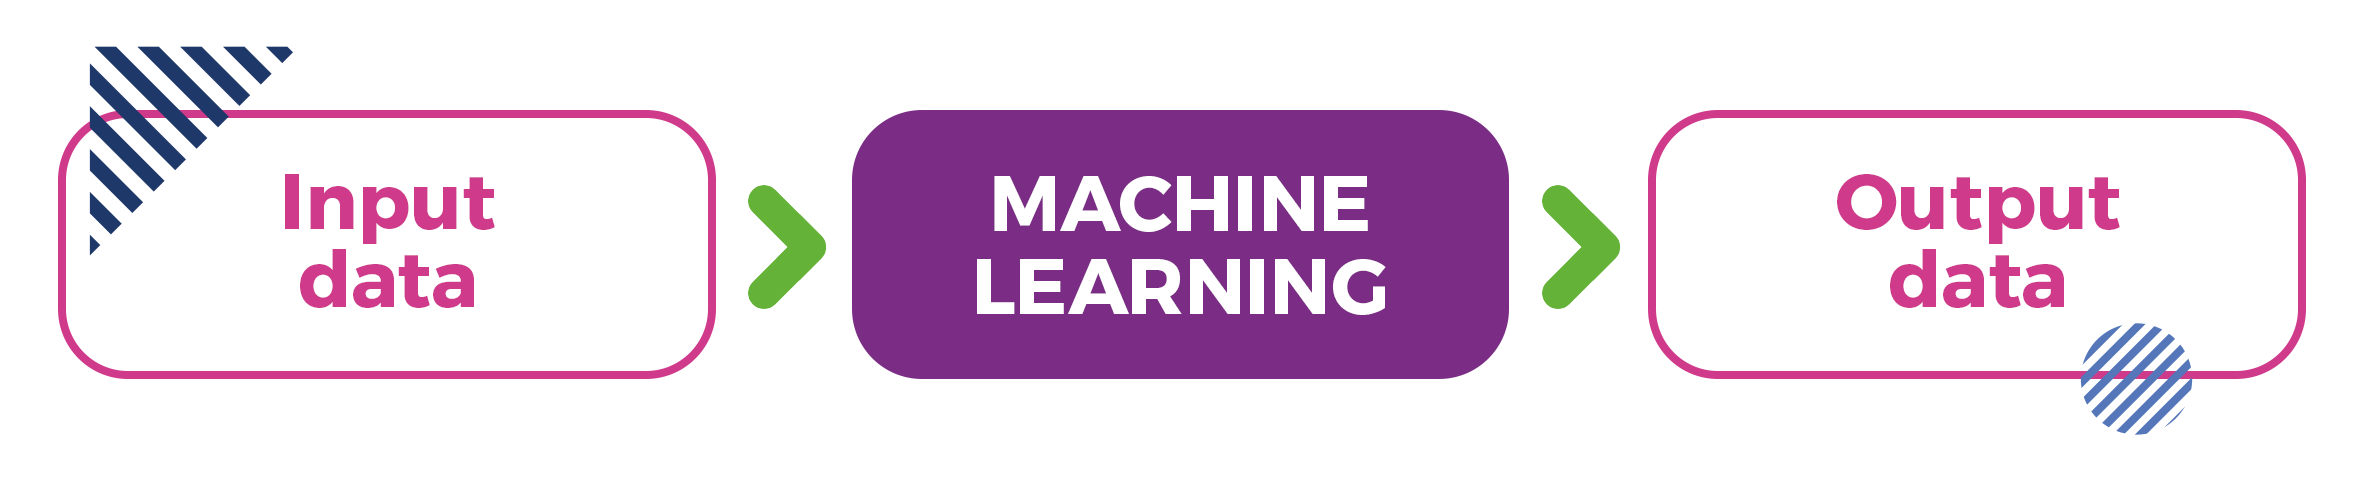 The machine learning scheme